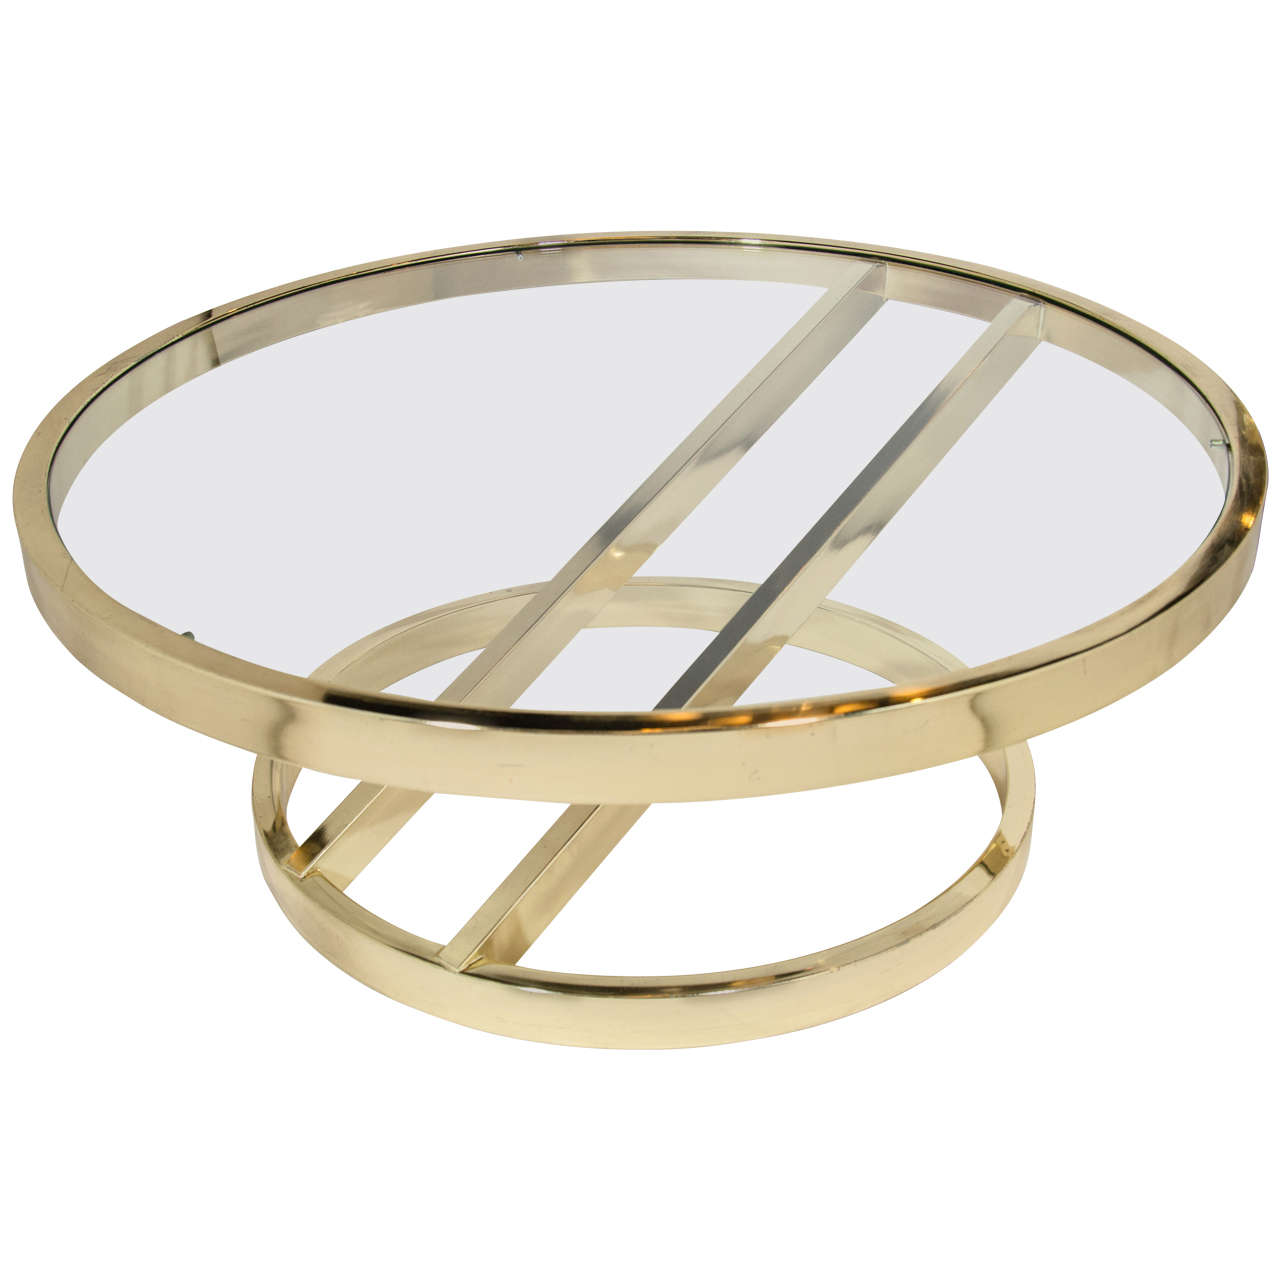 Circular Brass Coffee Table With Cantilevered Base By Milo Baughman 1